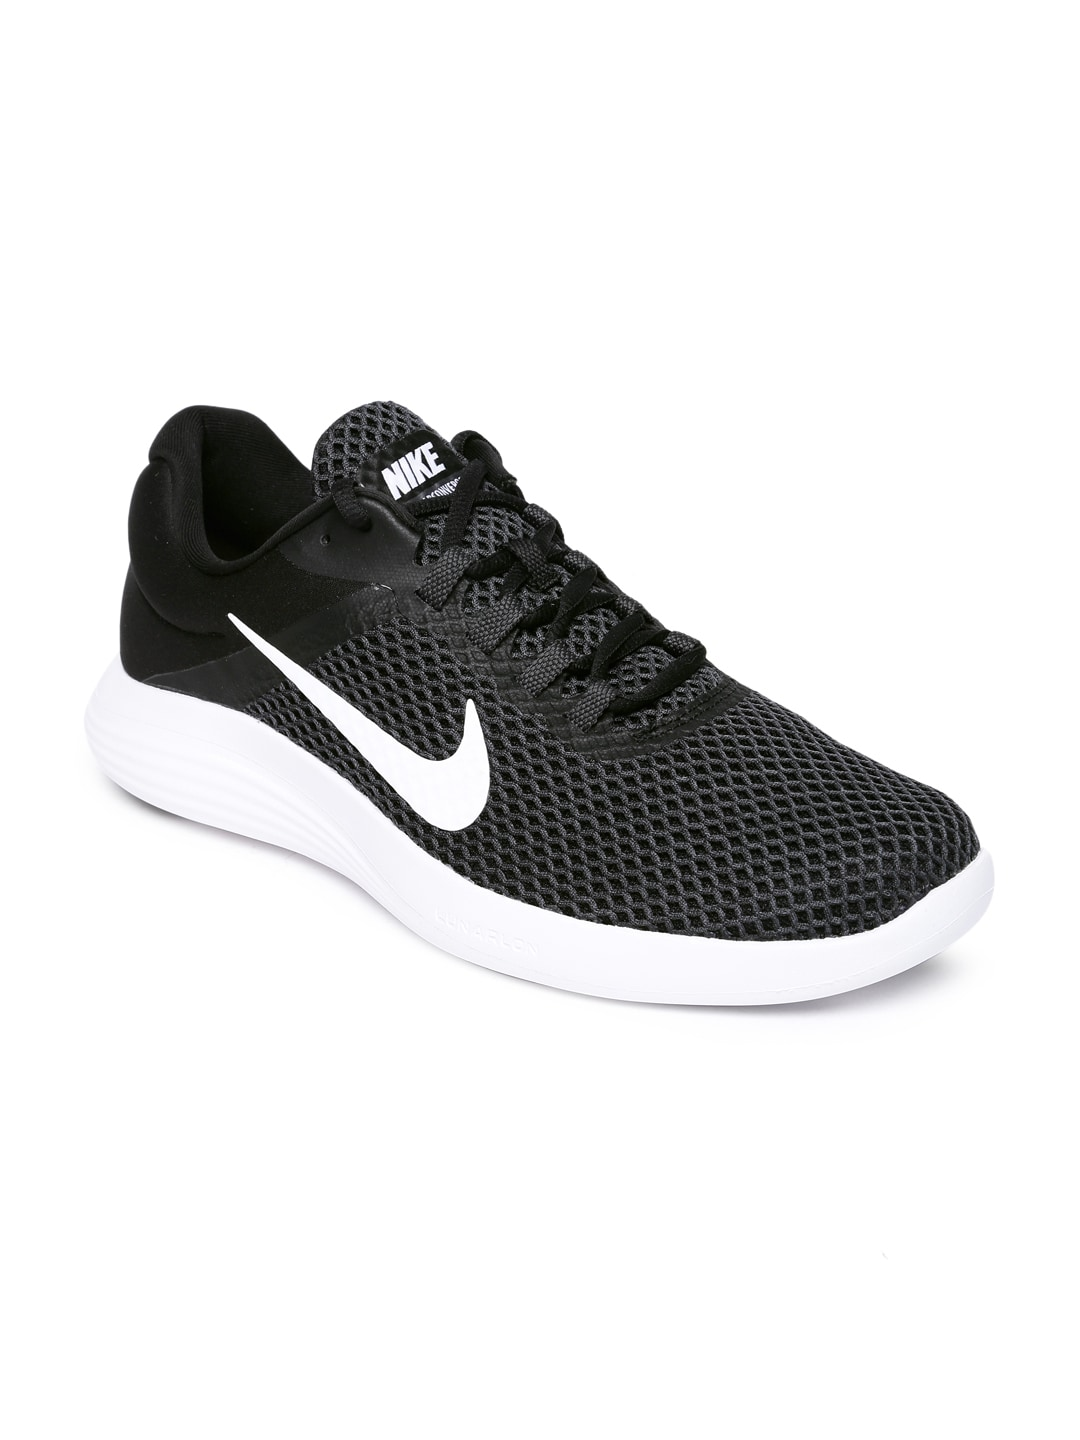 timeless design ca8a7 87c0b Nike Shoes - Buy Nike Shoes for Men, Women   Kids Online   Myntra